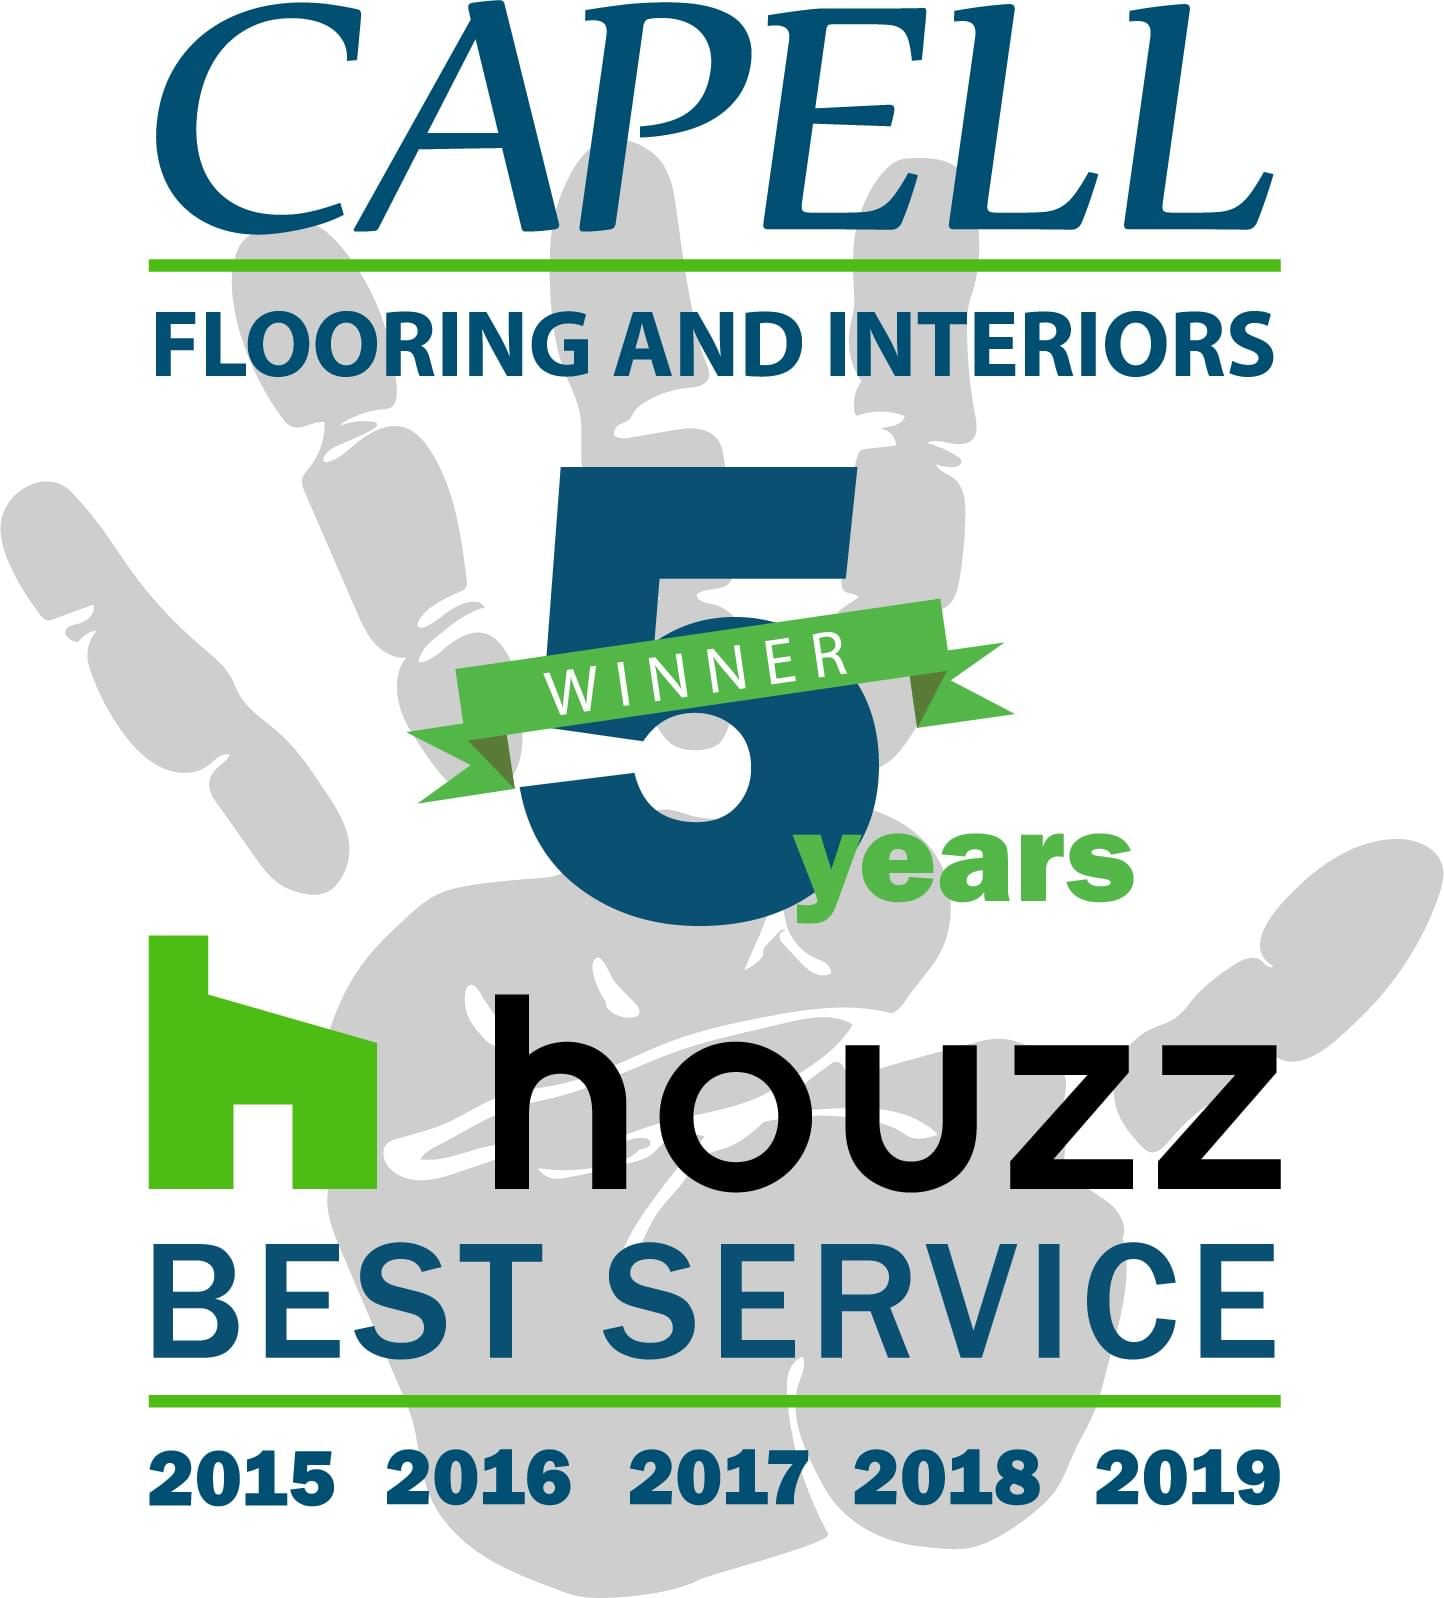 Capell Flooring and Interiors - Frequently Asked Questions